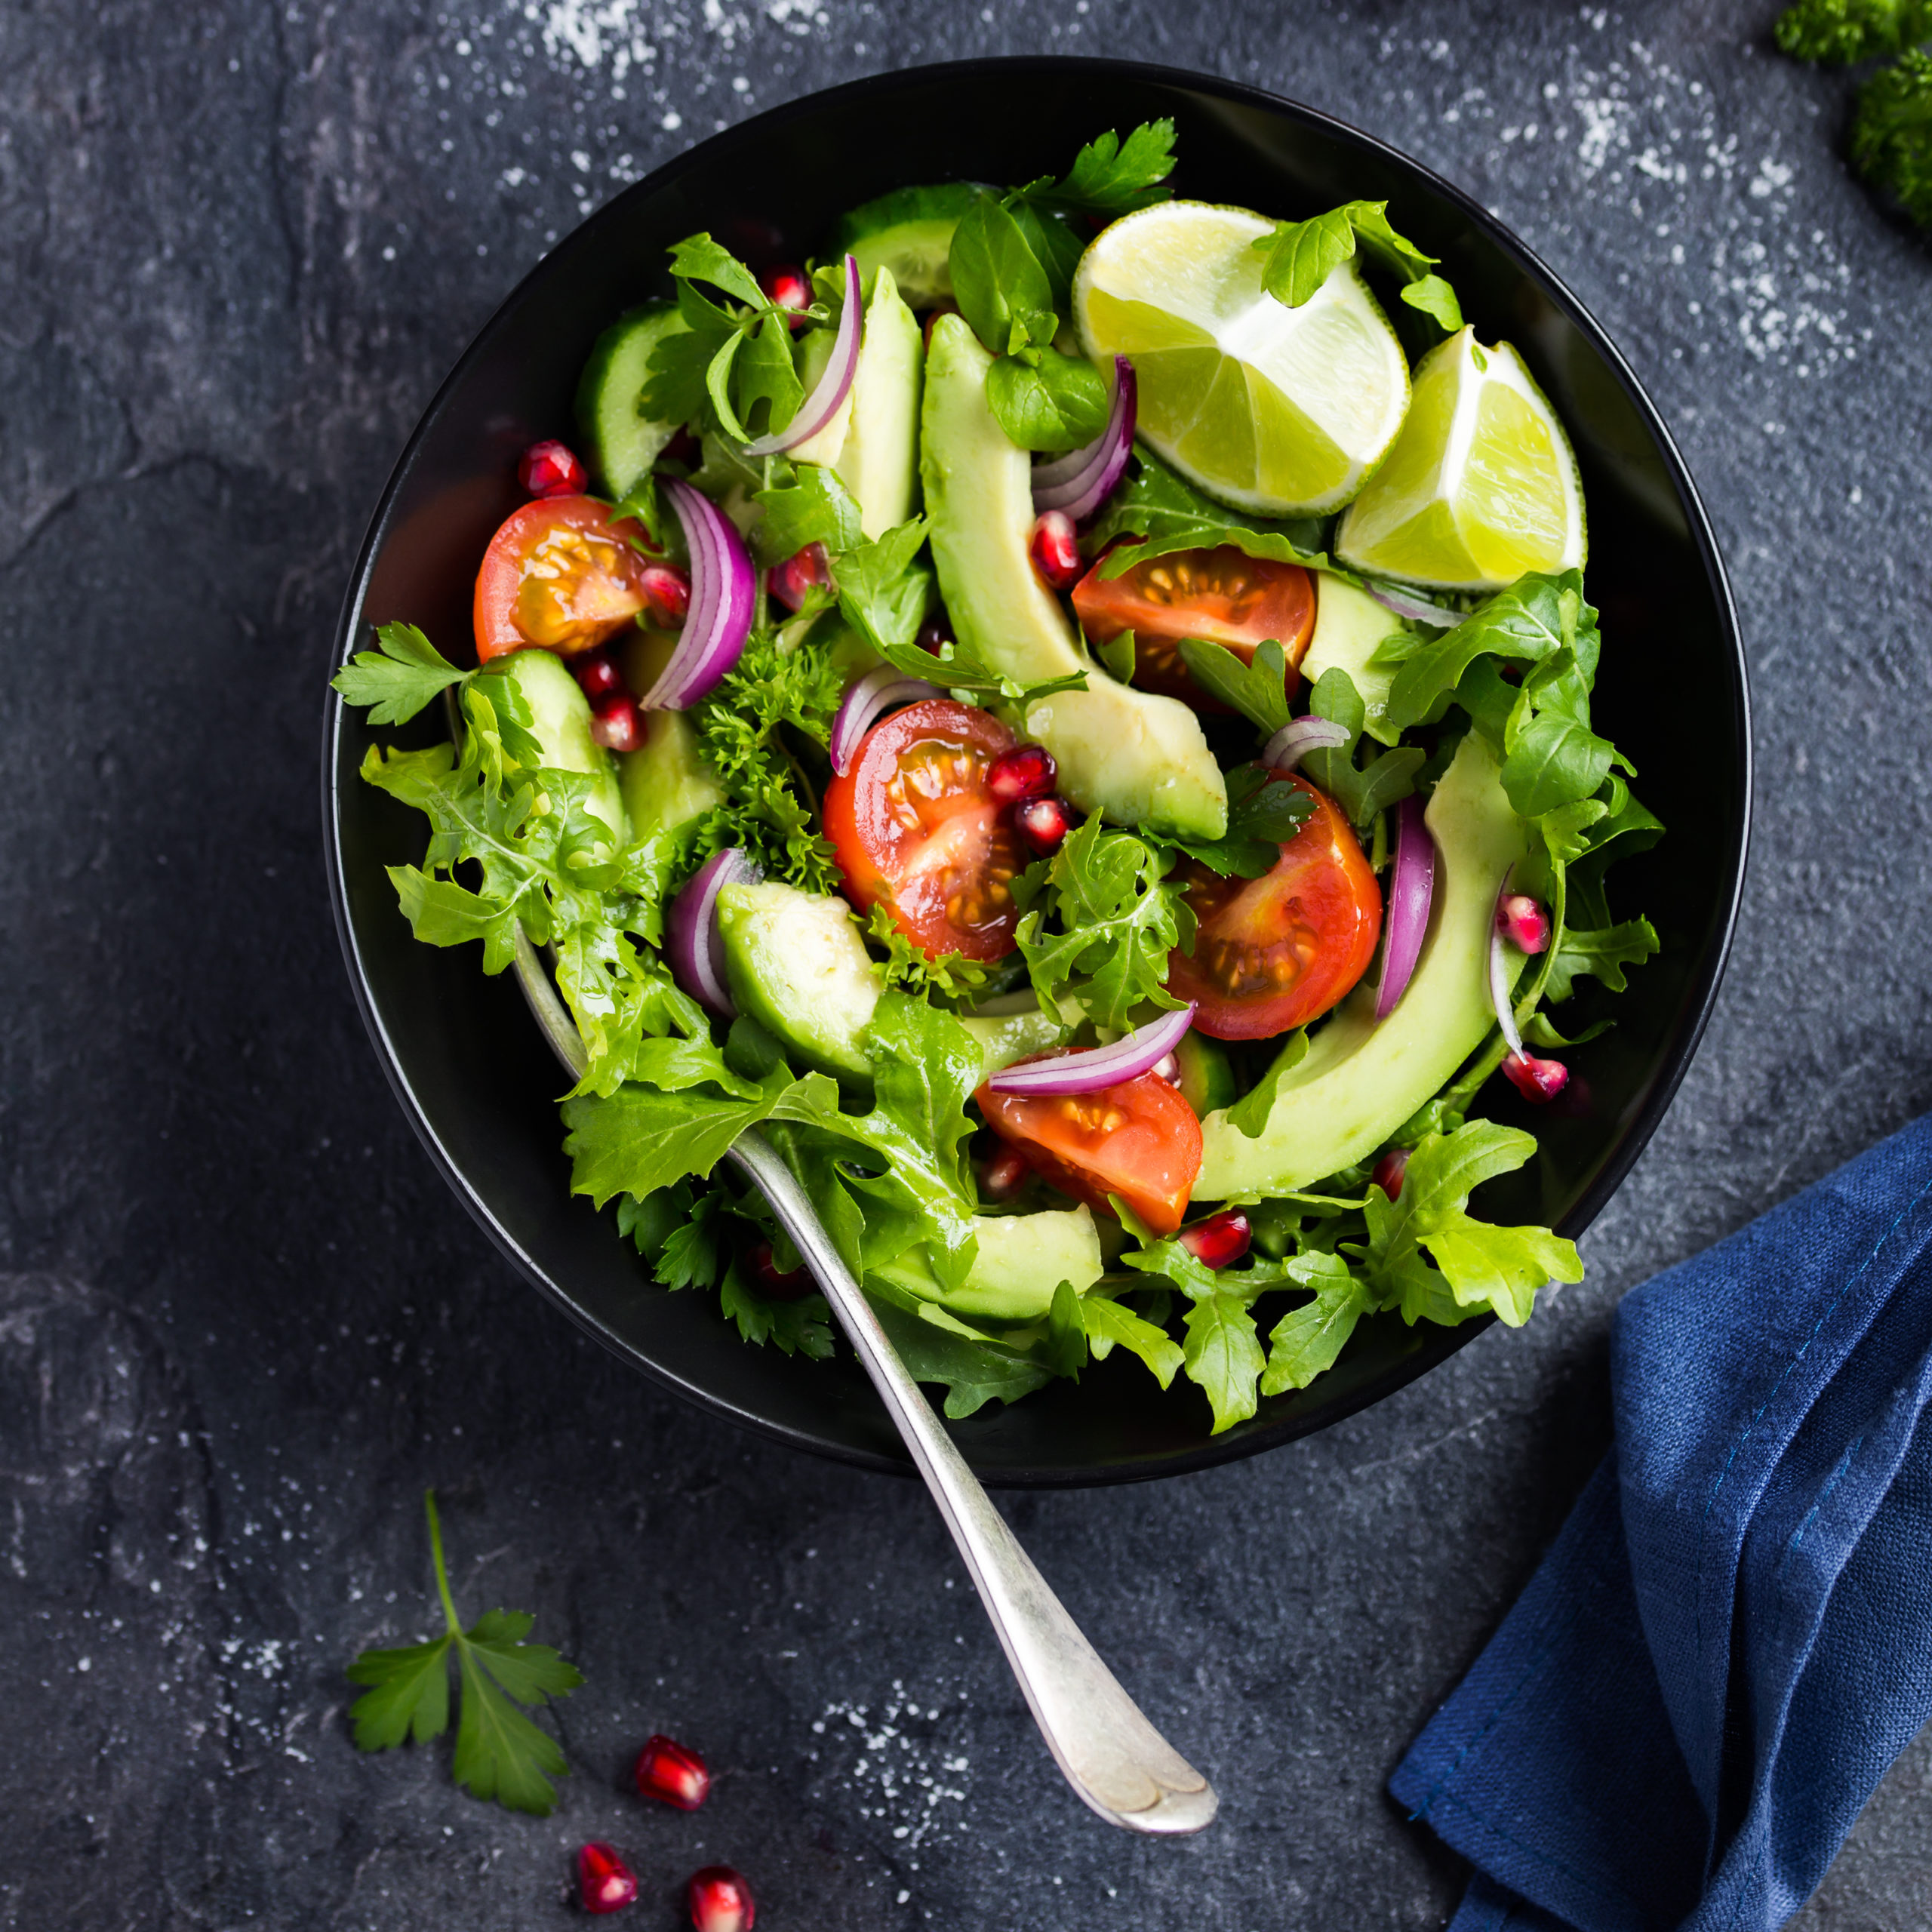 67 Summer Salad Recipes with the Seasons Best Ingredients